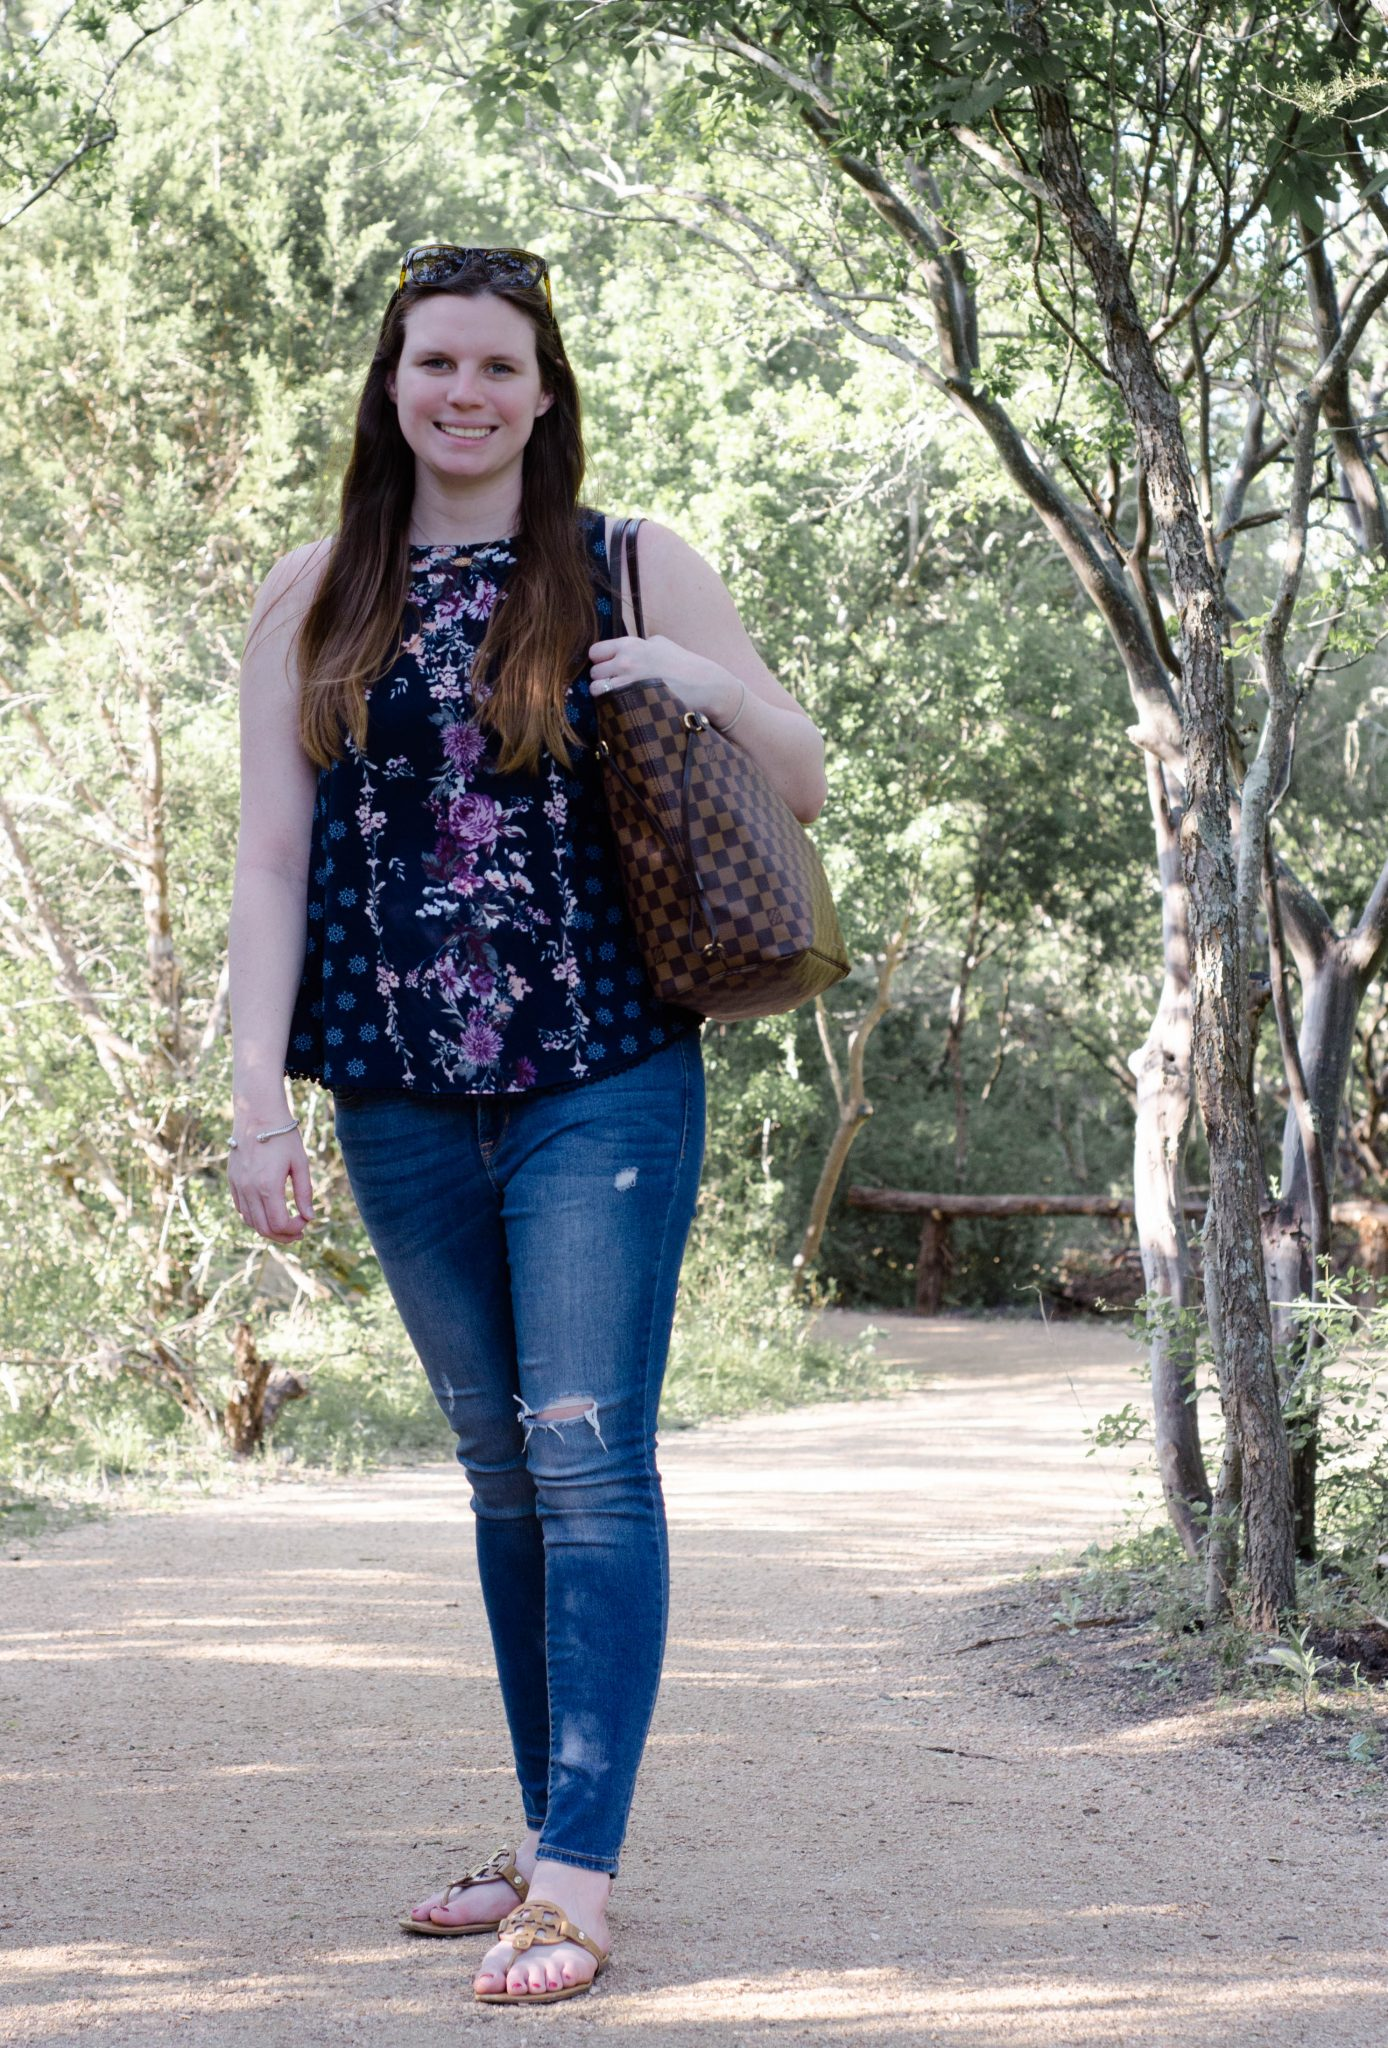 A Nature Outfit to Frolic Through the Forest + Coffee Chat